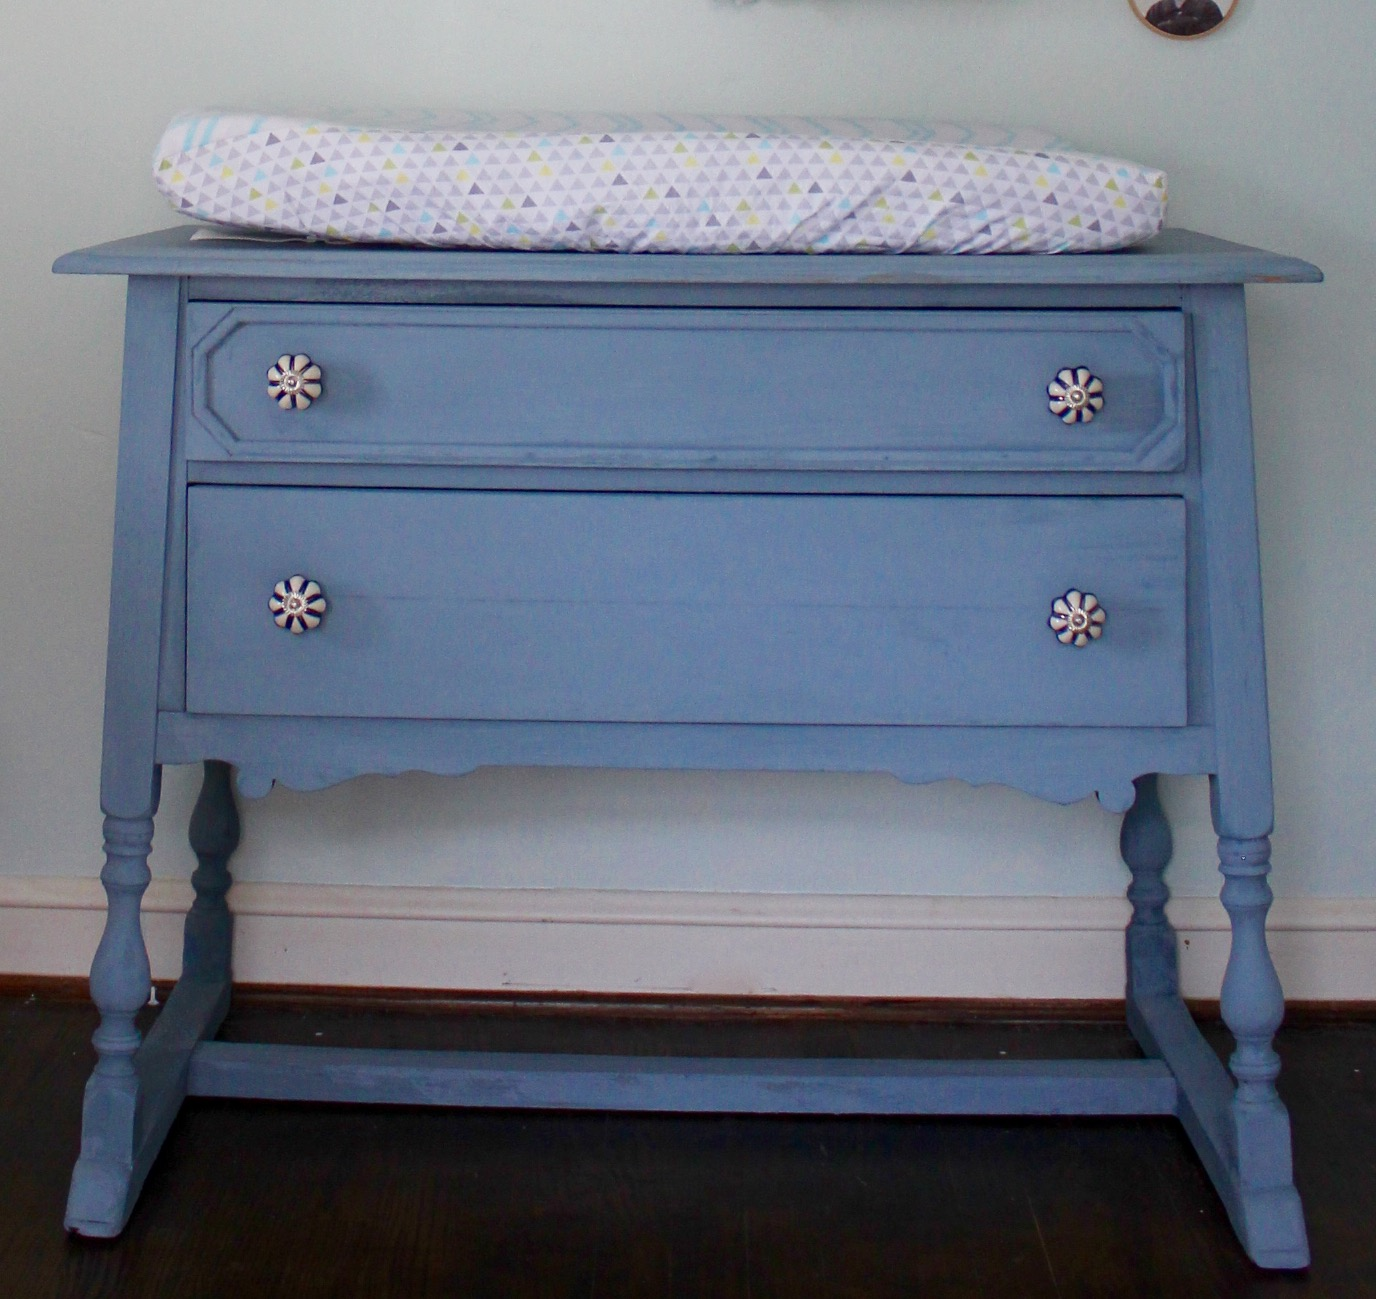 The Cute Knobs Were Only $5 At Home Goods. As You Can See, It Doubles As A Changing  Table And Is Working Out Great.